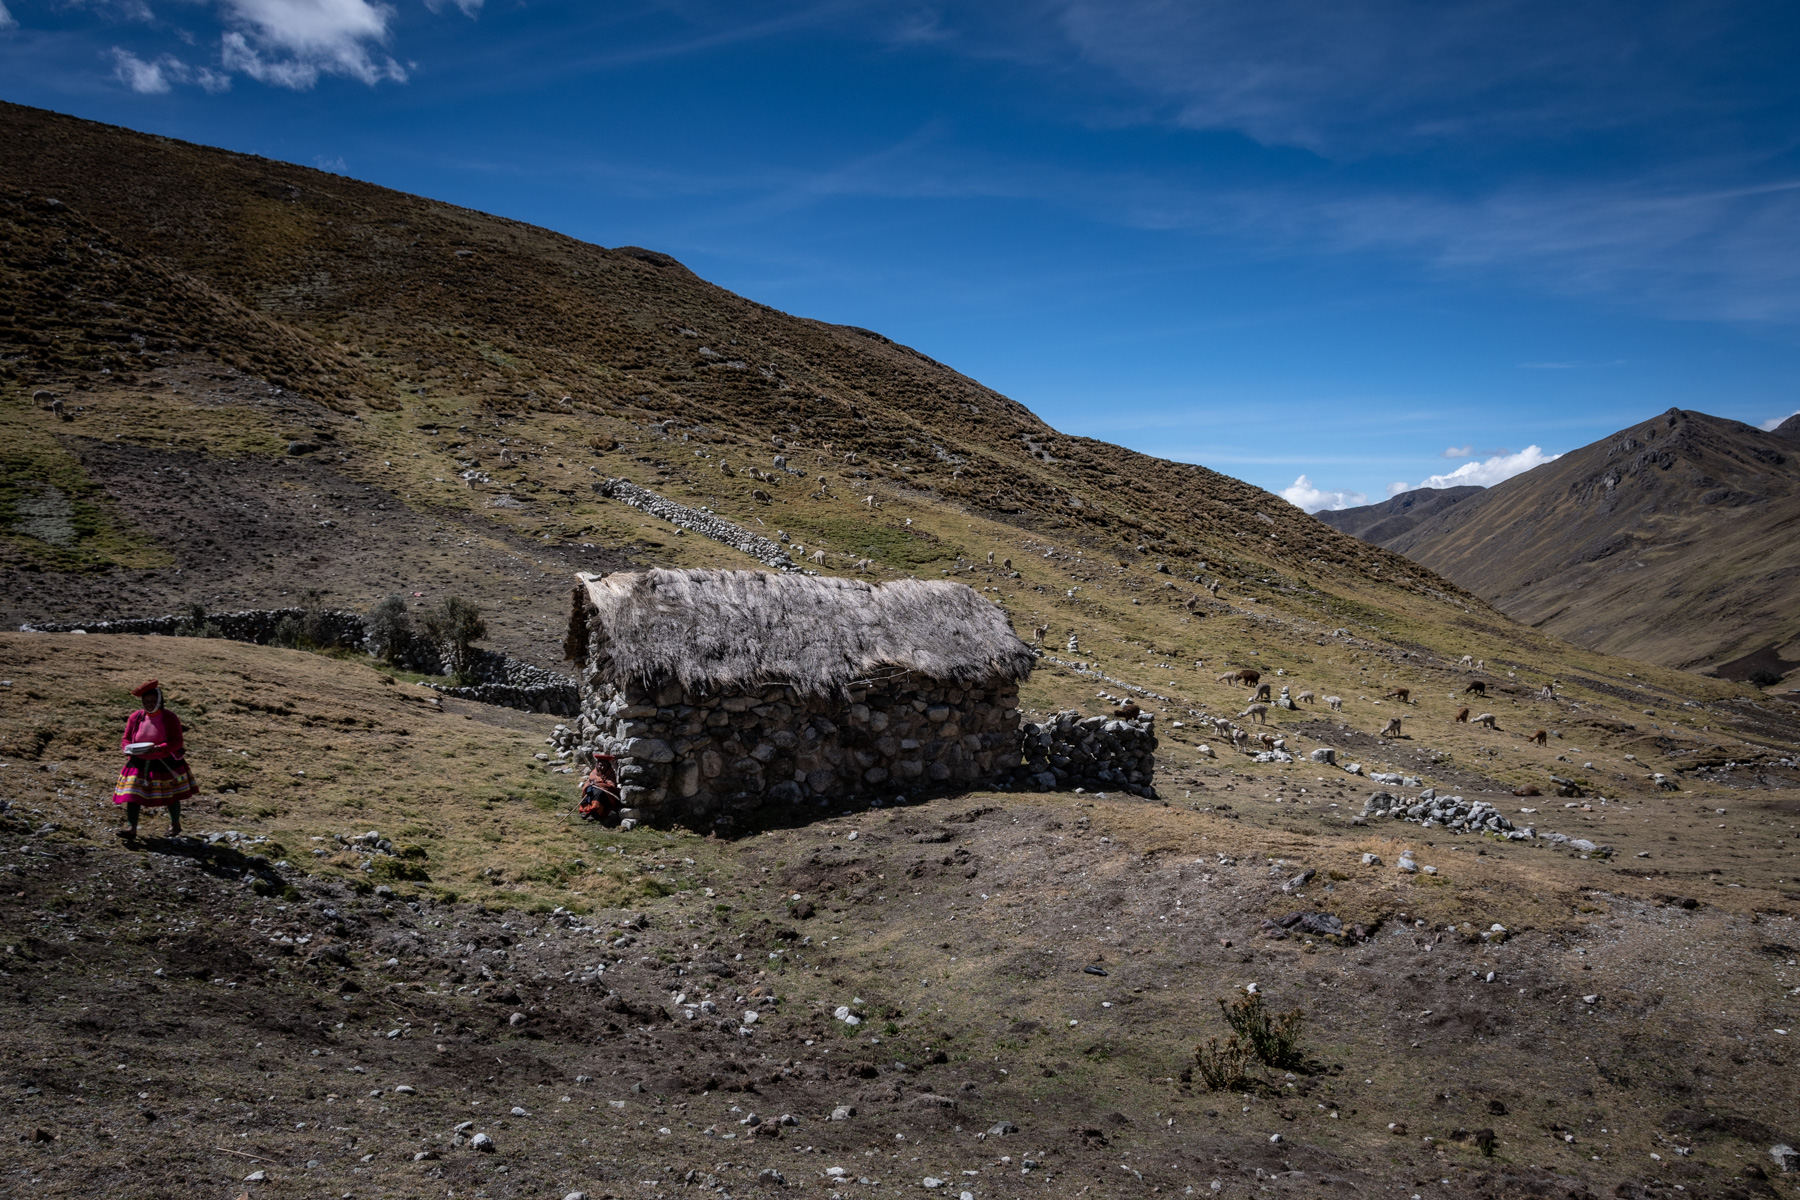 A women walks in Quechua, the high Andes of Peru